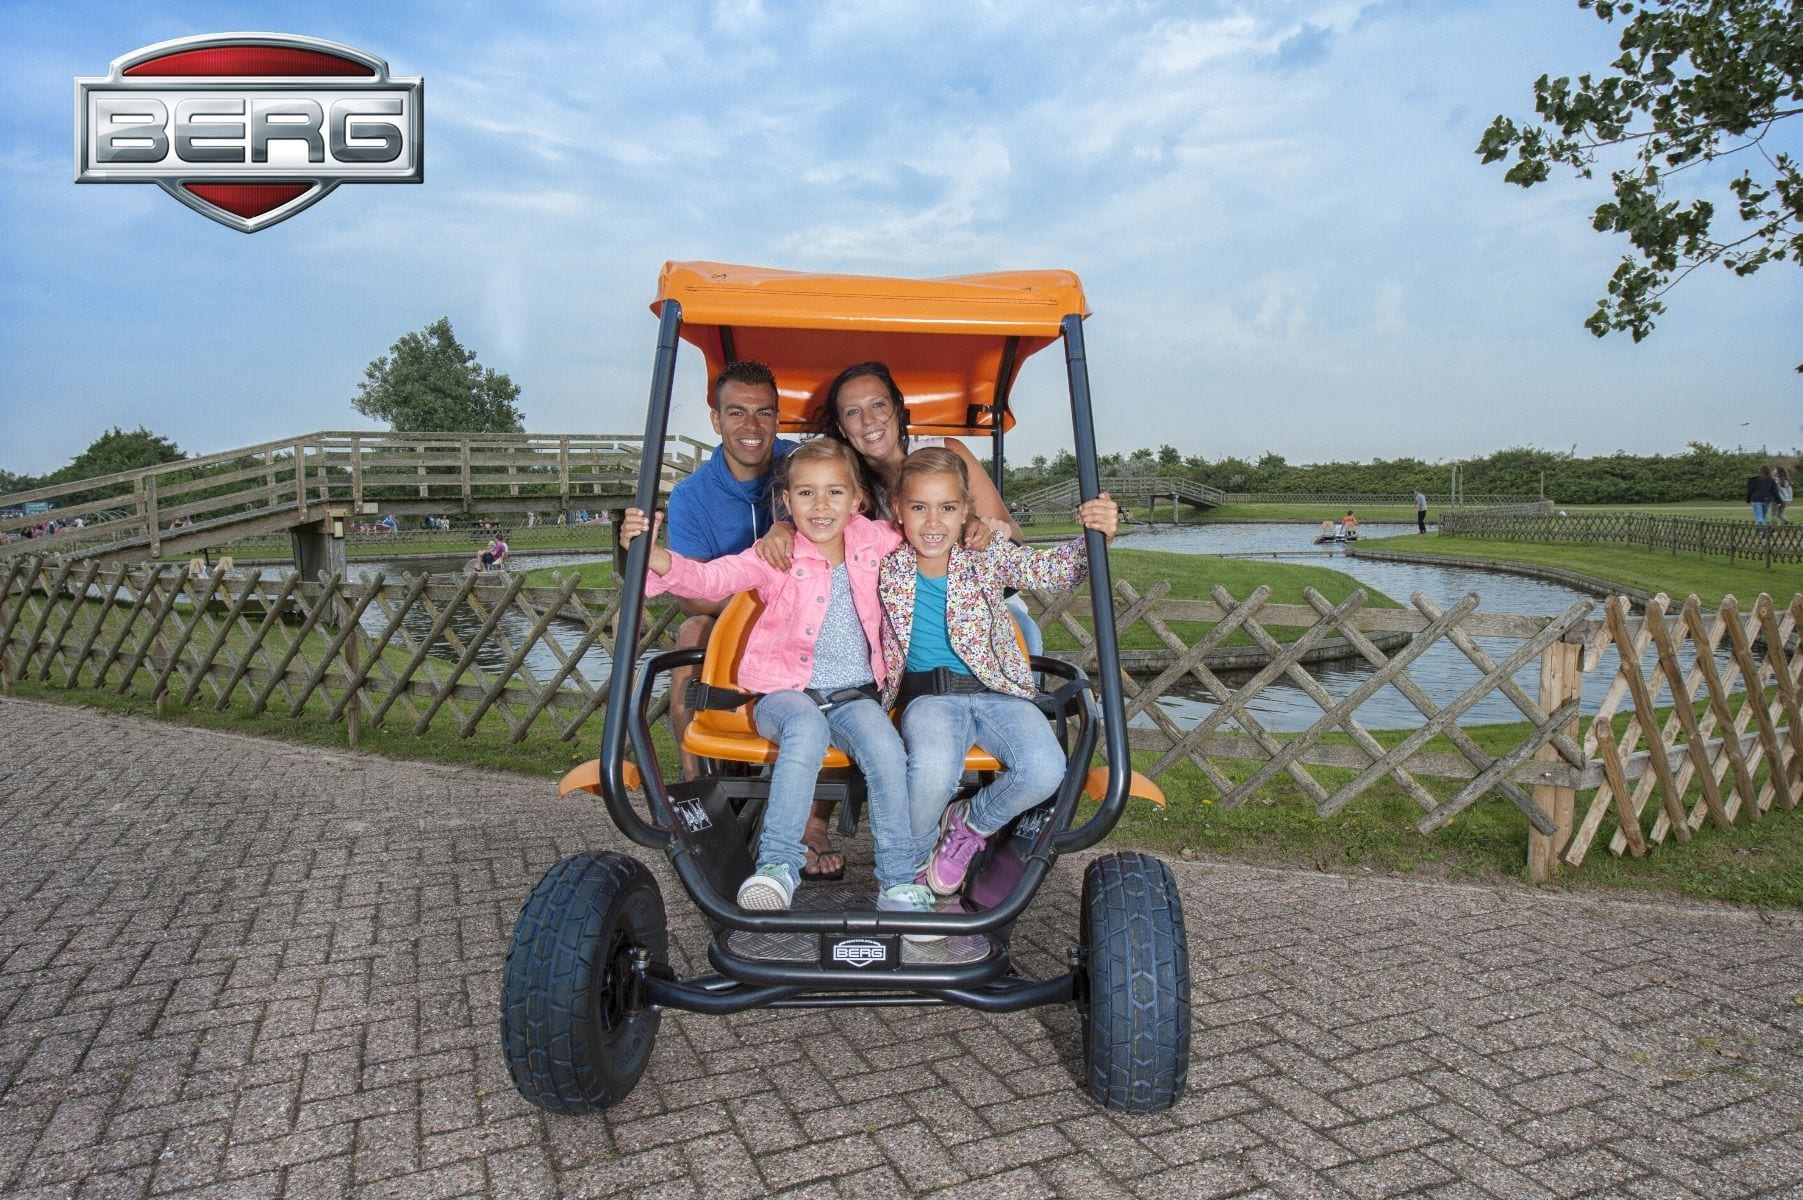 Berg Sunroof Gran Tour (for Gt From 2015) – Go Kart Accessory